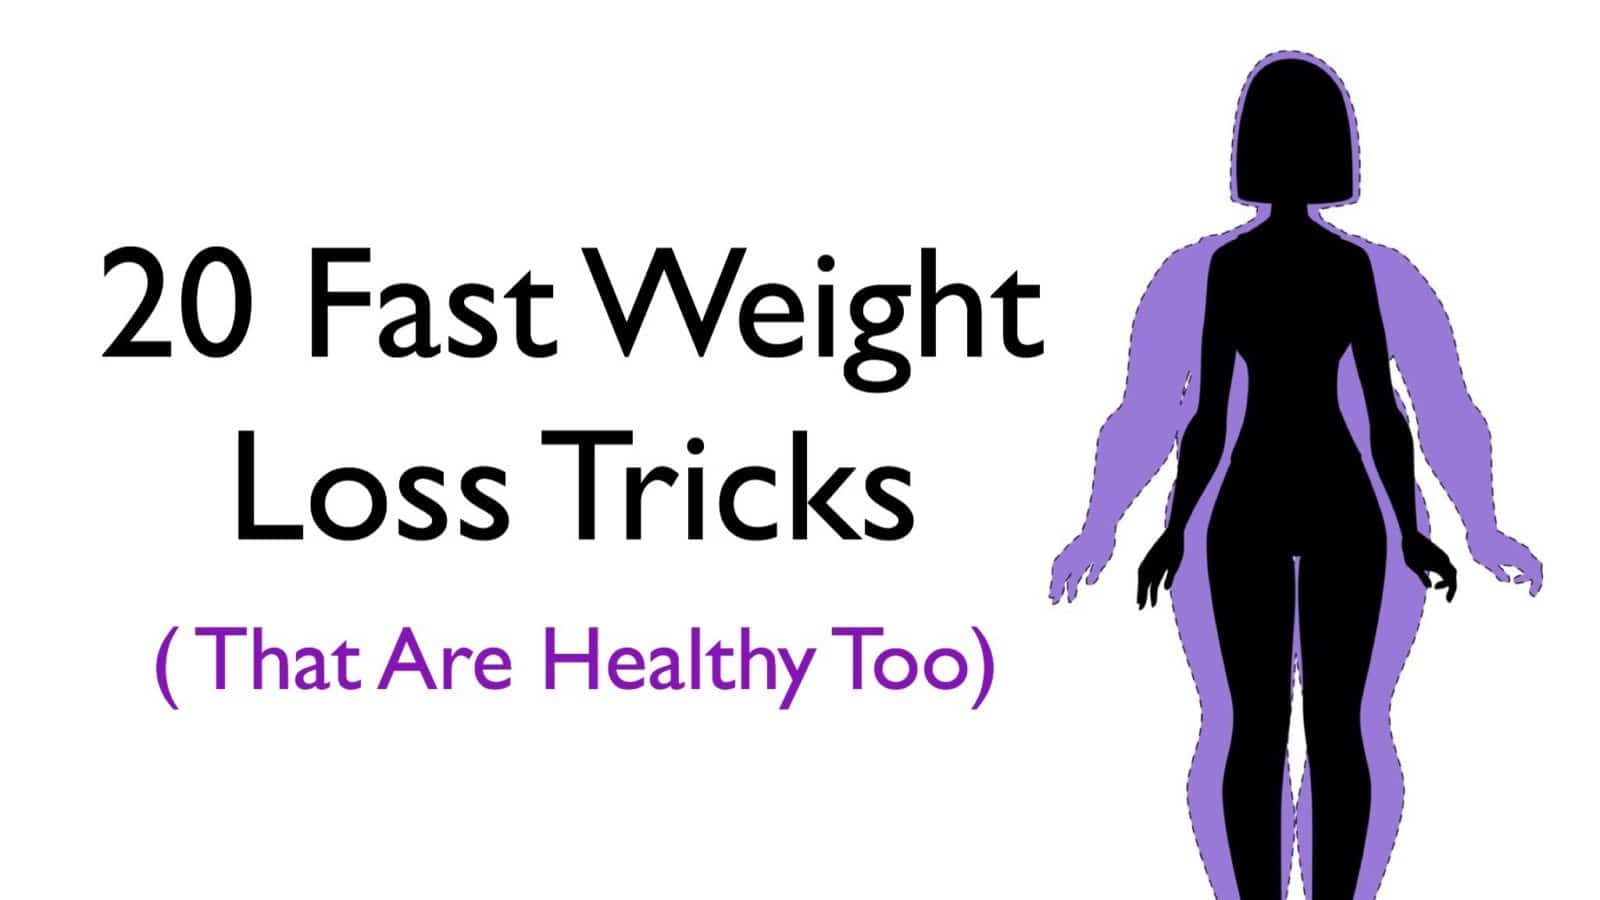 unhealthy rapid weight loss tricks